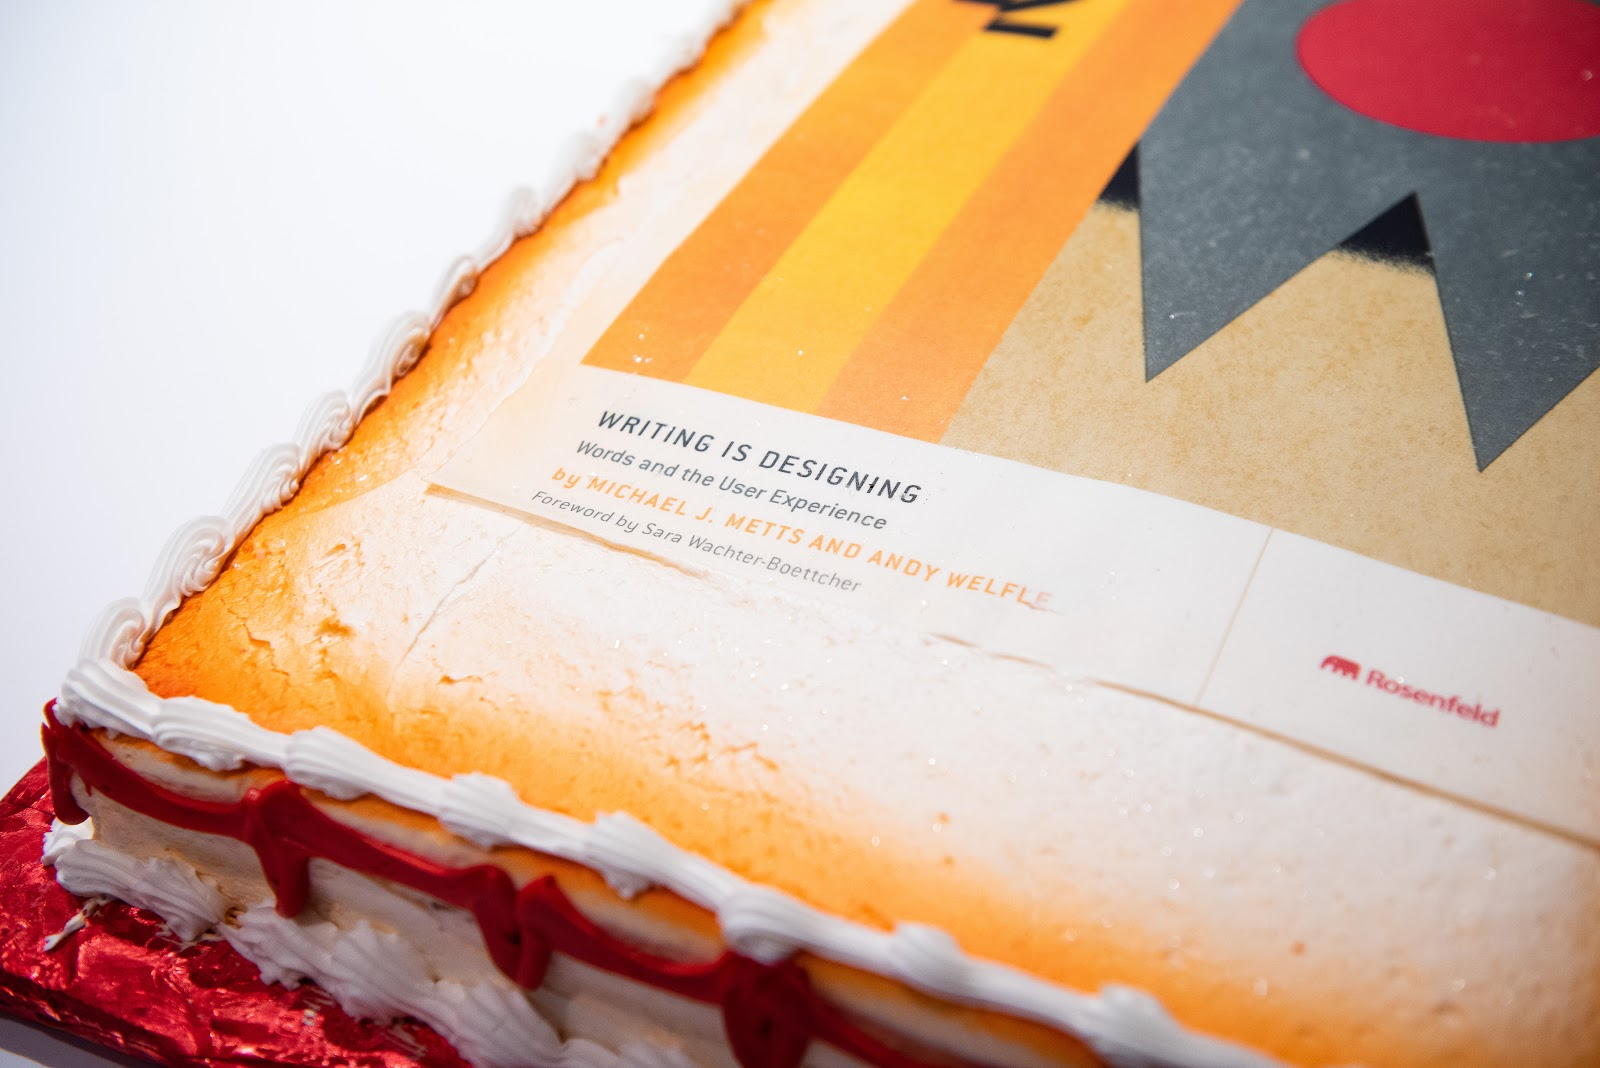 A cake decorated with the cover art of Andy Welfle and Michael Metts' new book, Writing is Designing: Words and the User Experience.